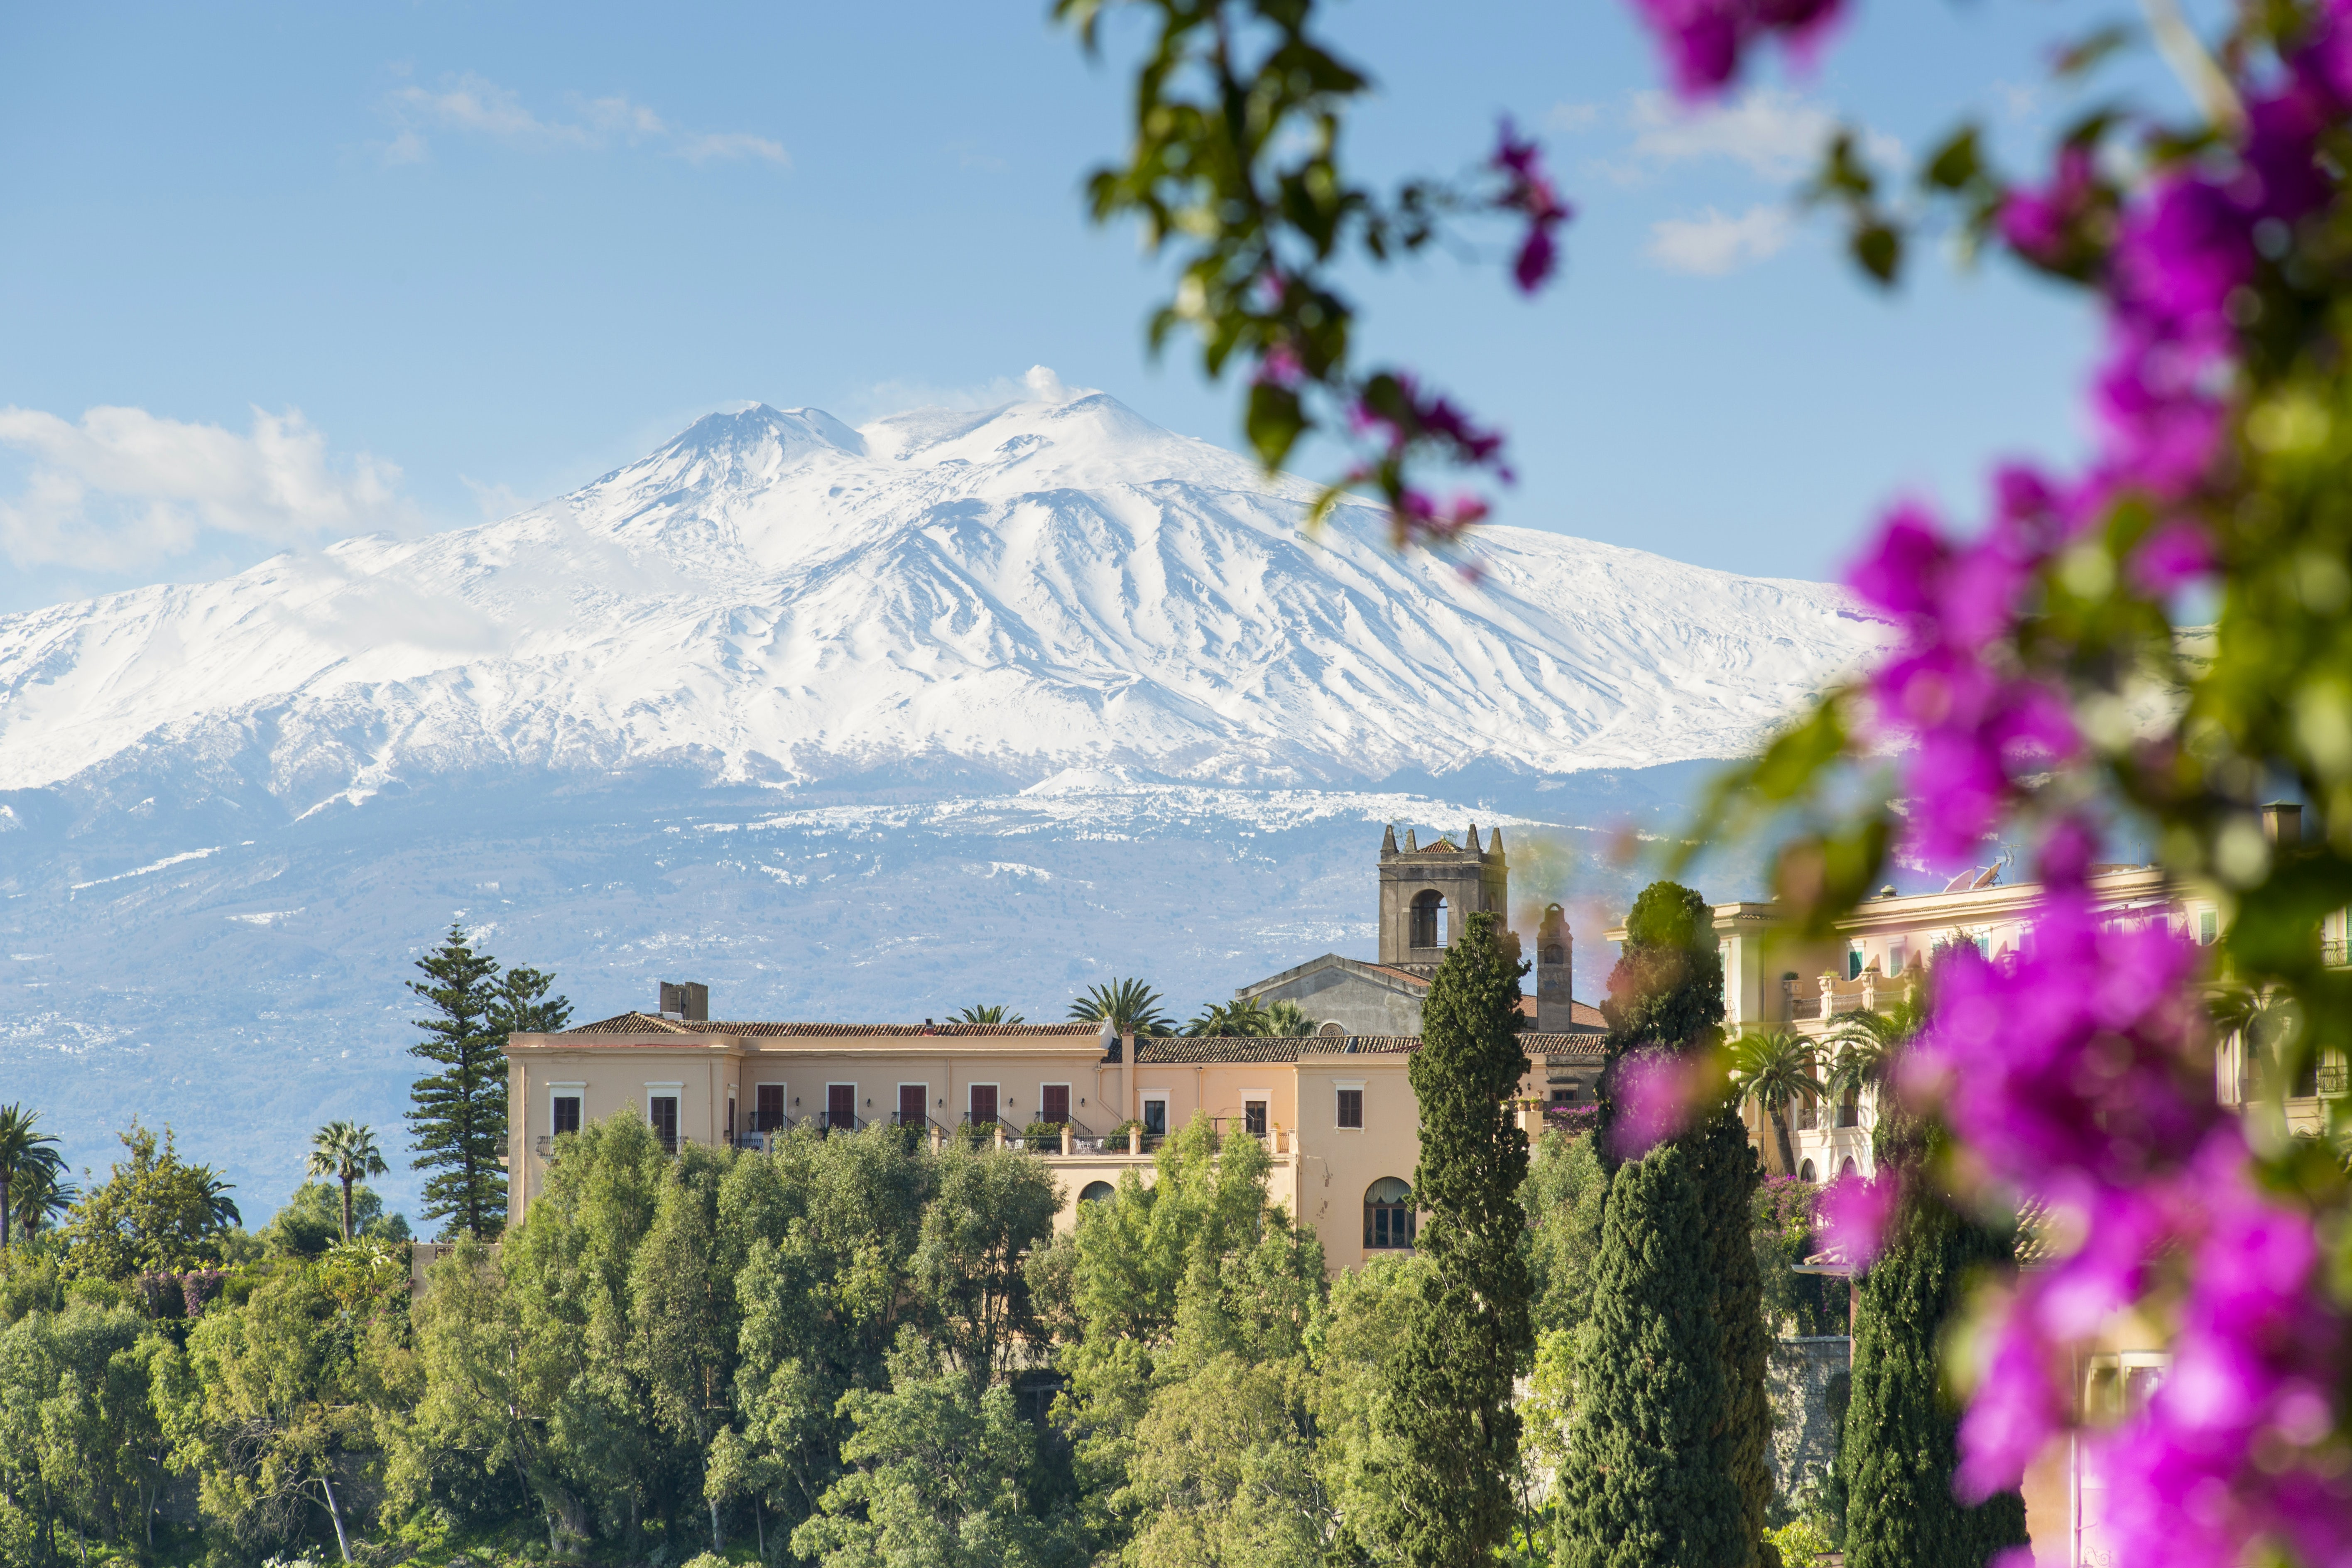 The remote corners of Sicily: volcanic nature and beaches under the sun